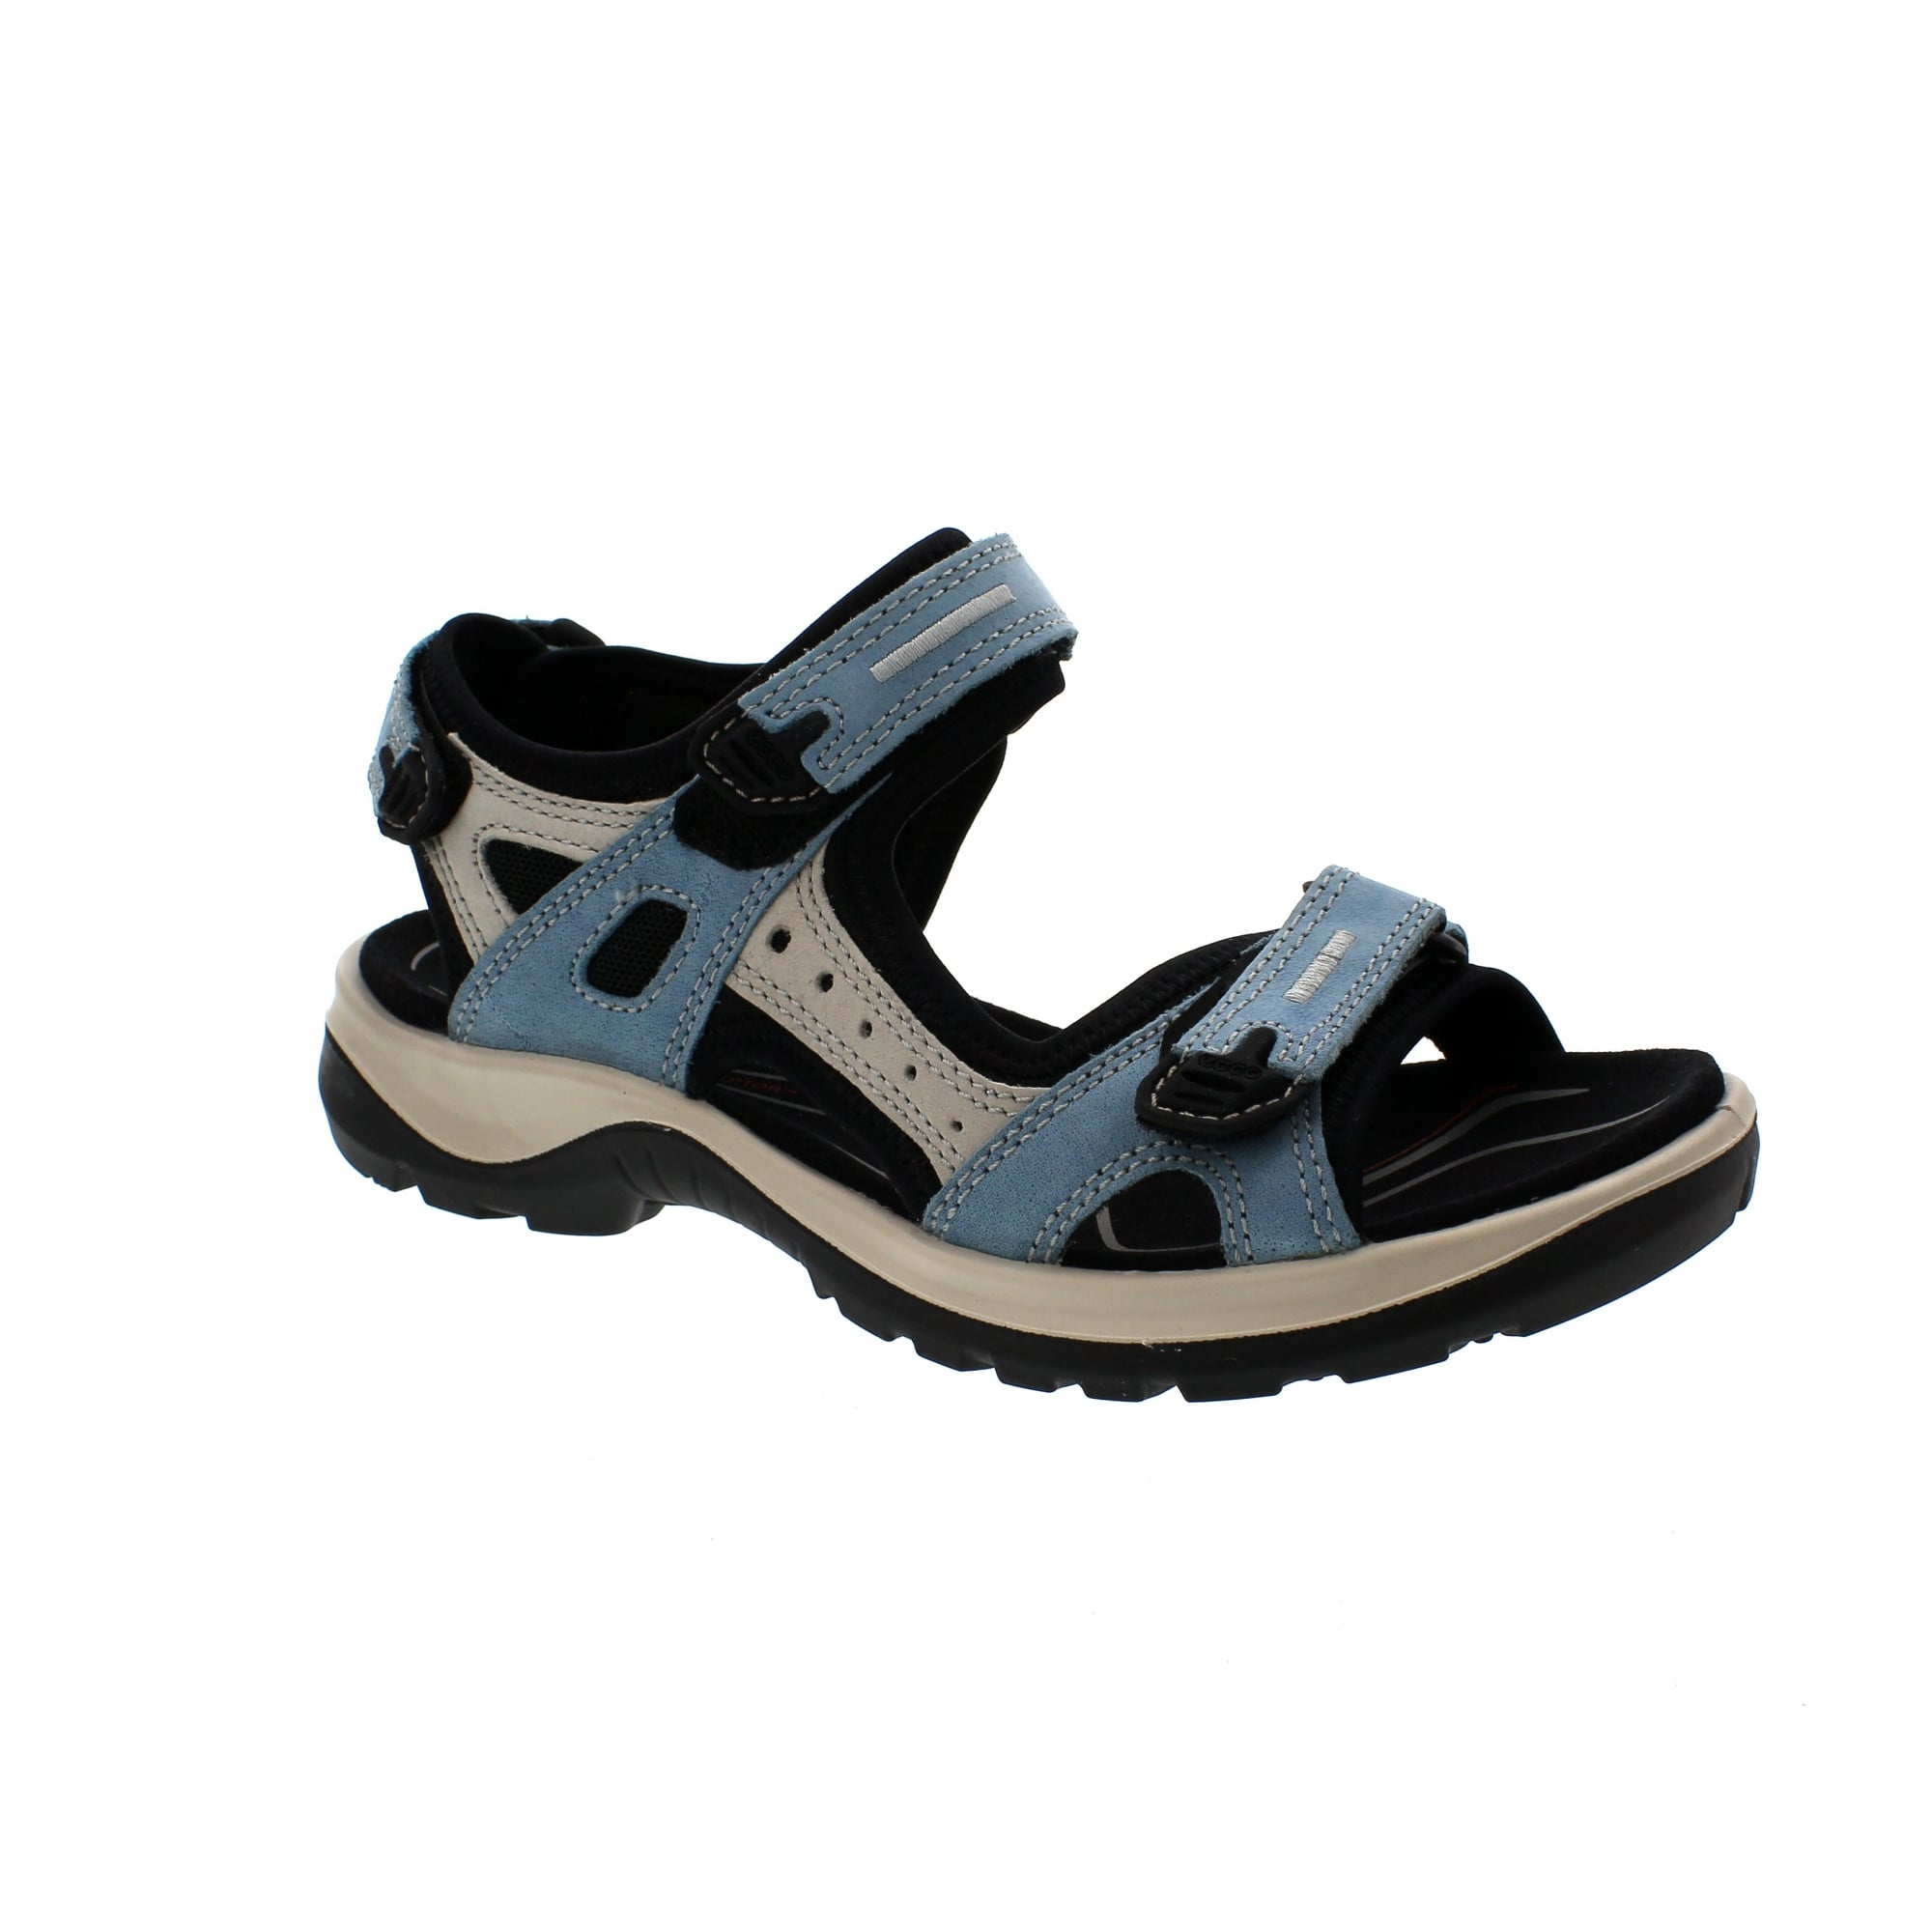 Rogerson Ecco Womens Offroad Uk From 02292 069563 Shoes SqSp8XZ